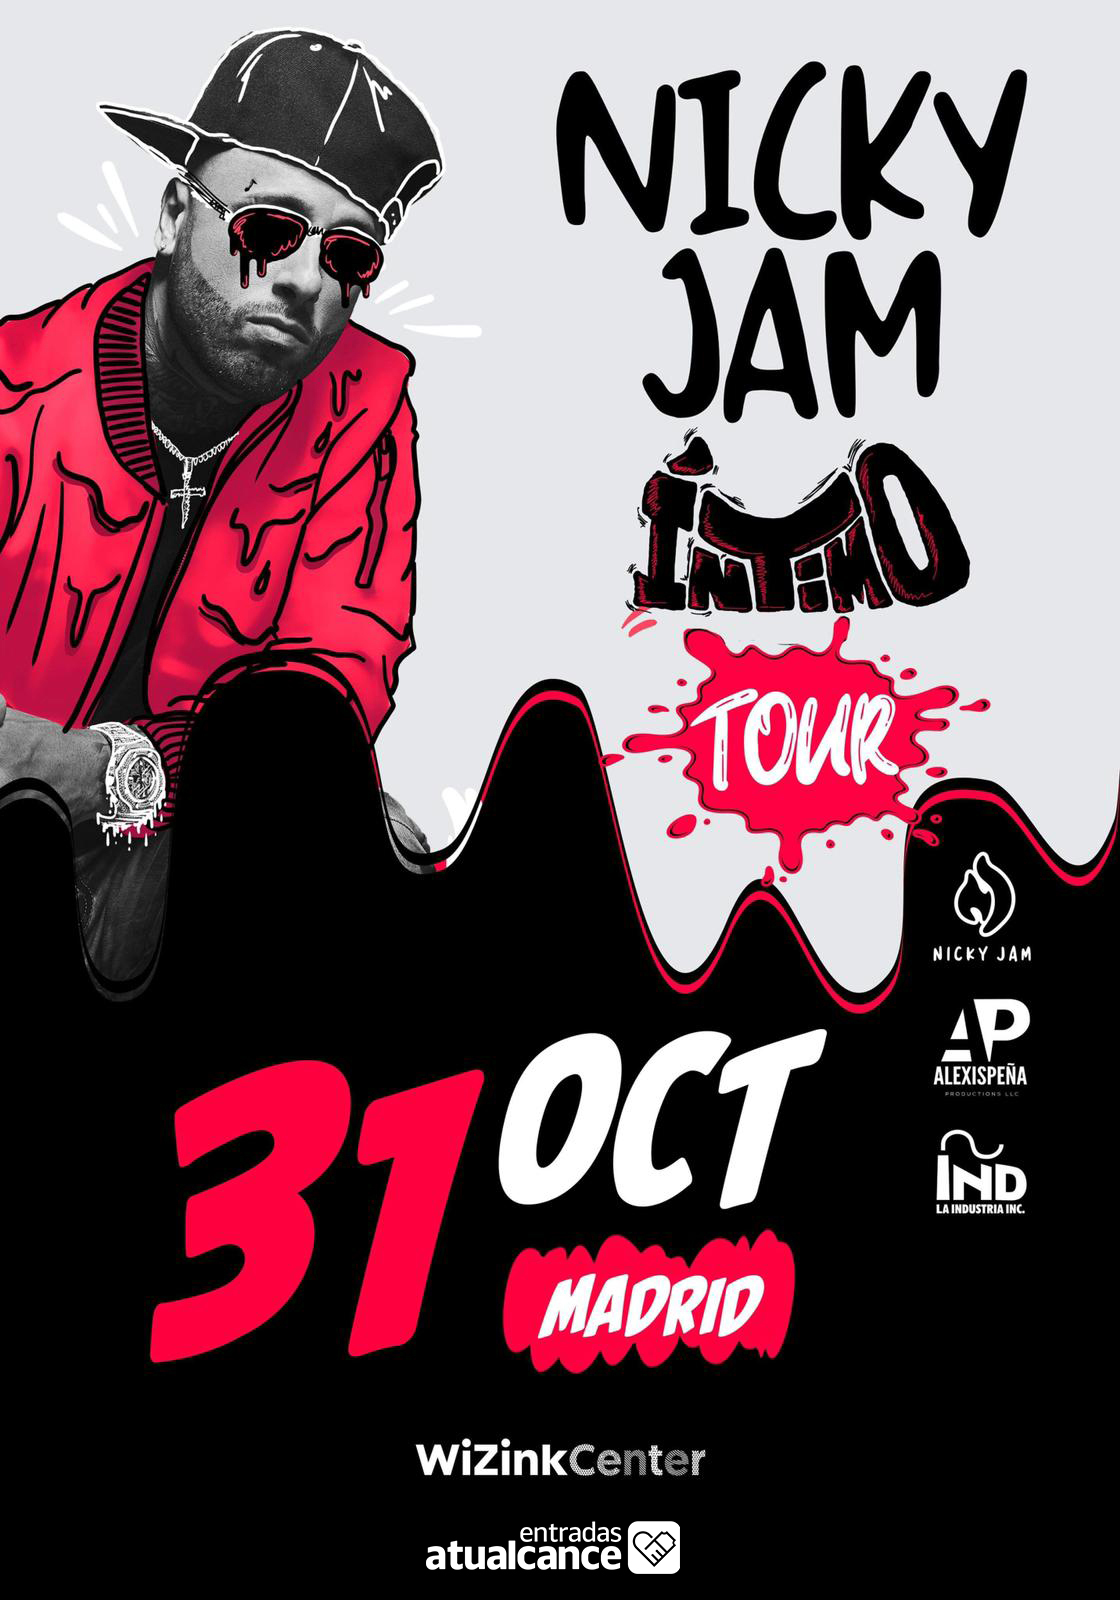 nicky-jam-and-friends-intimo-tour-en-mad